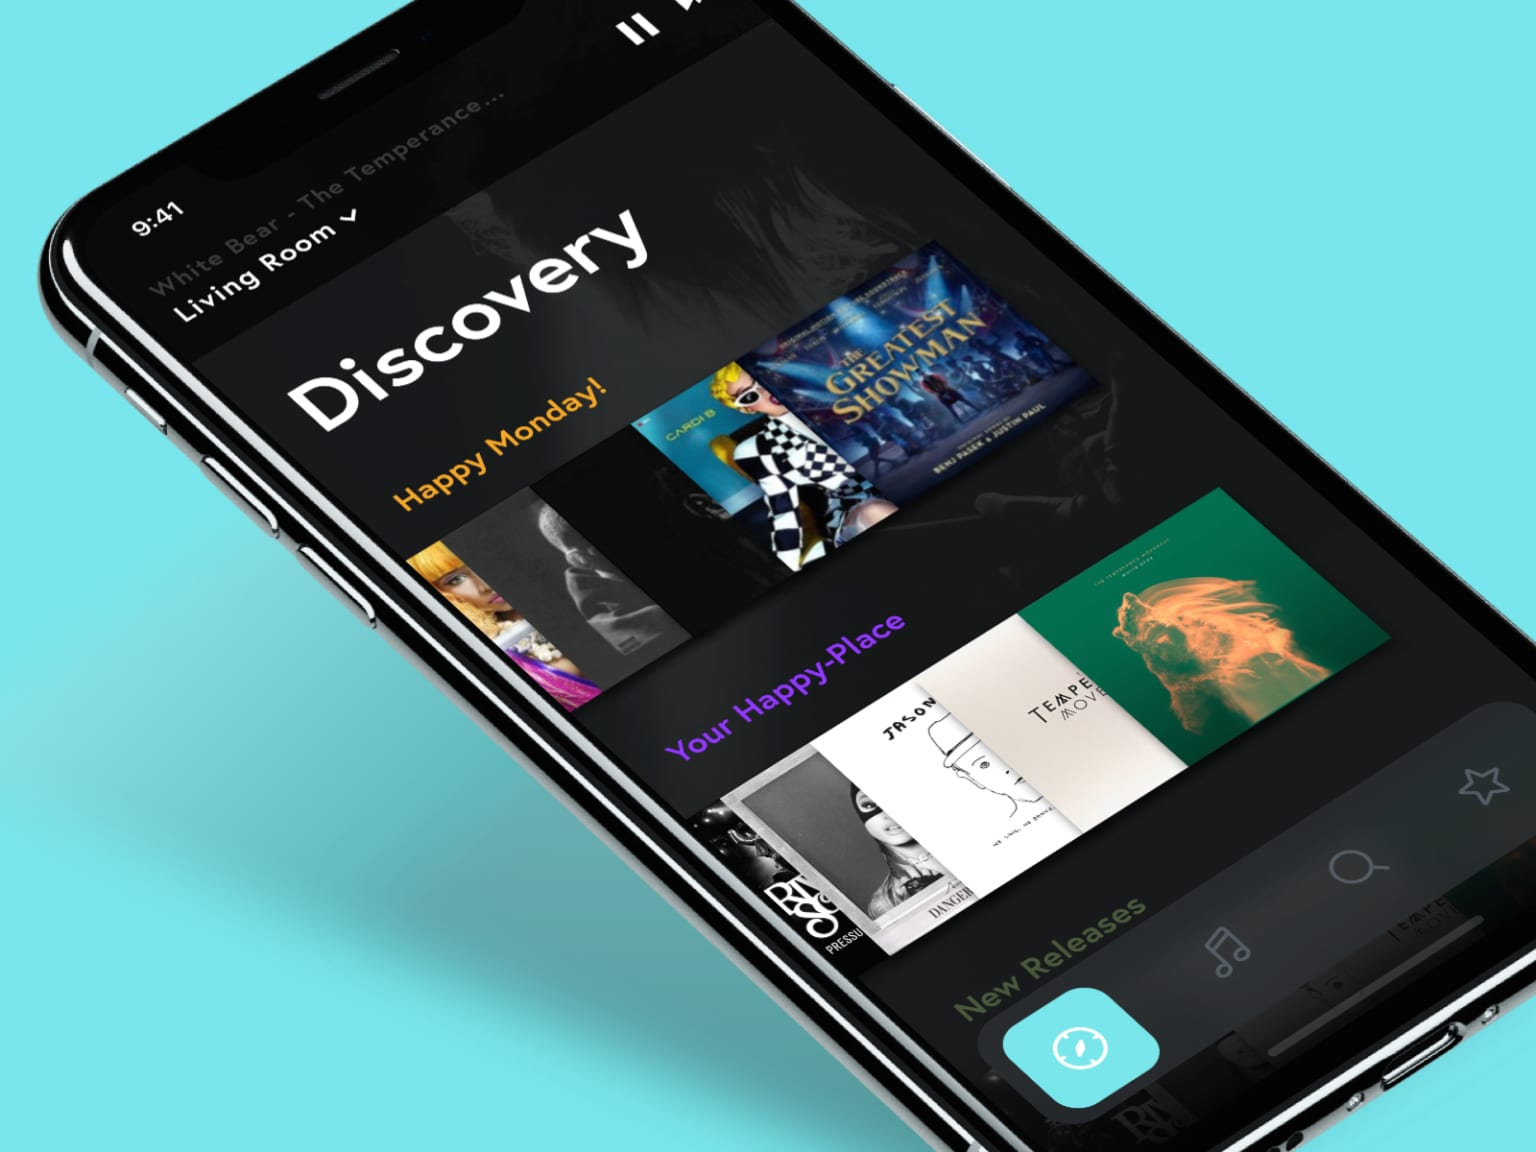 Bluesound/NAD iOS/Android App